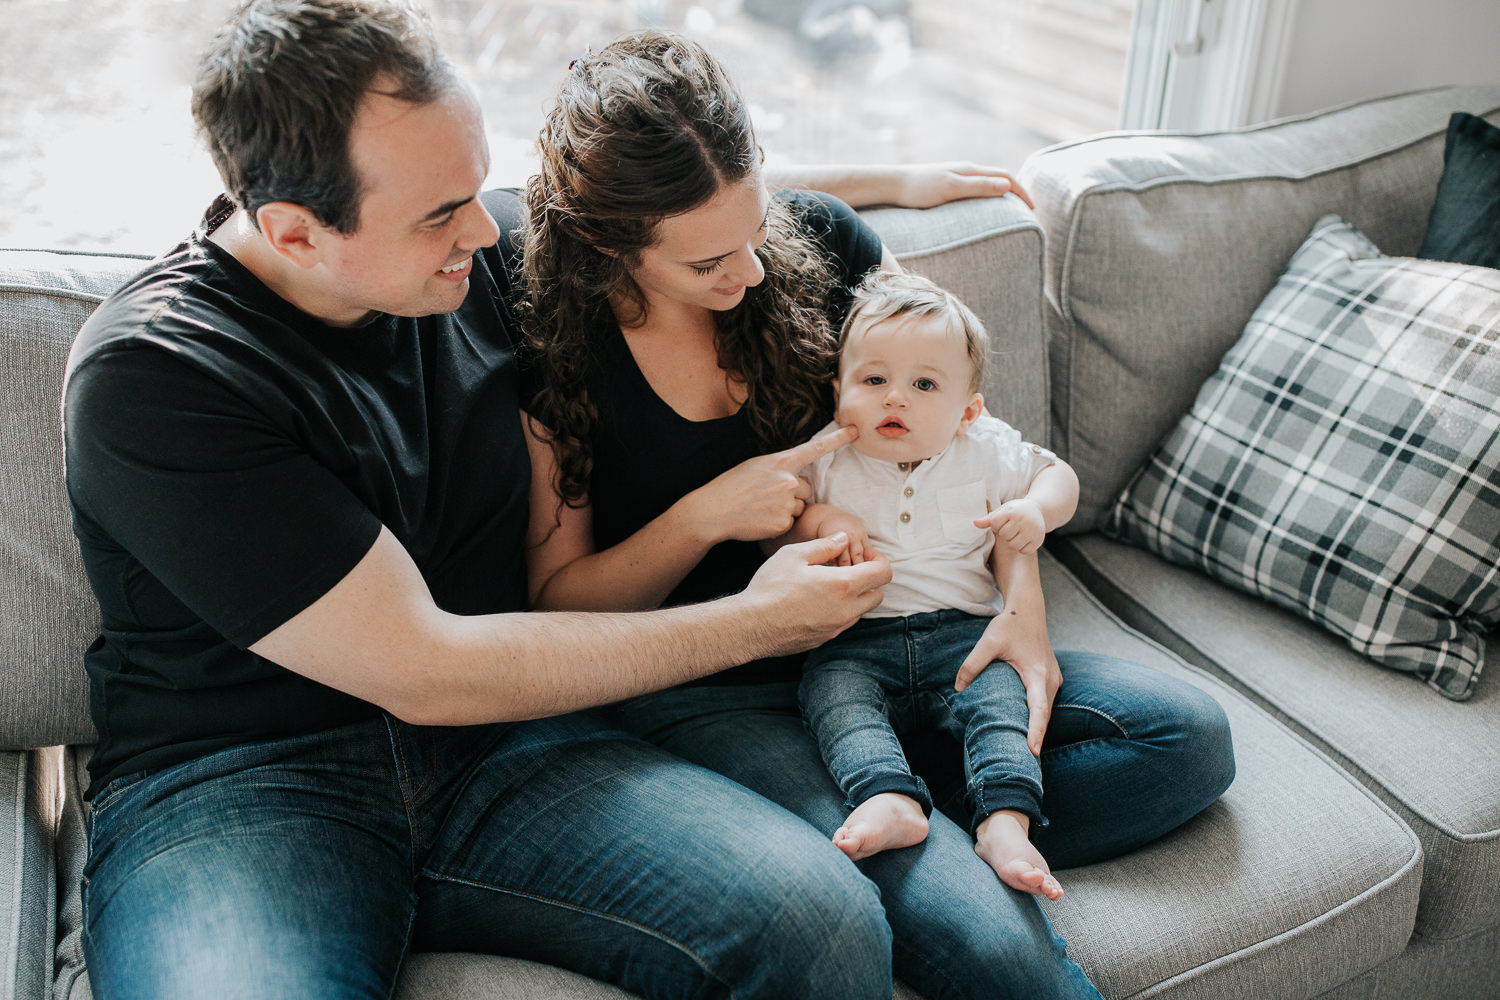 family of 3 sitting on couch, 9 month old baby boy with dark hair sitting on mom's lap looking at camera, parents smiling at son - Newmarket Golden Hour Photography